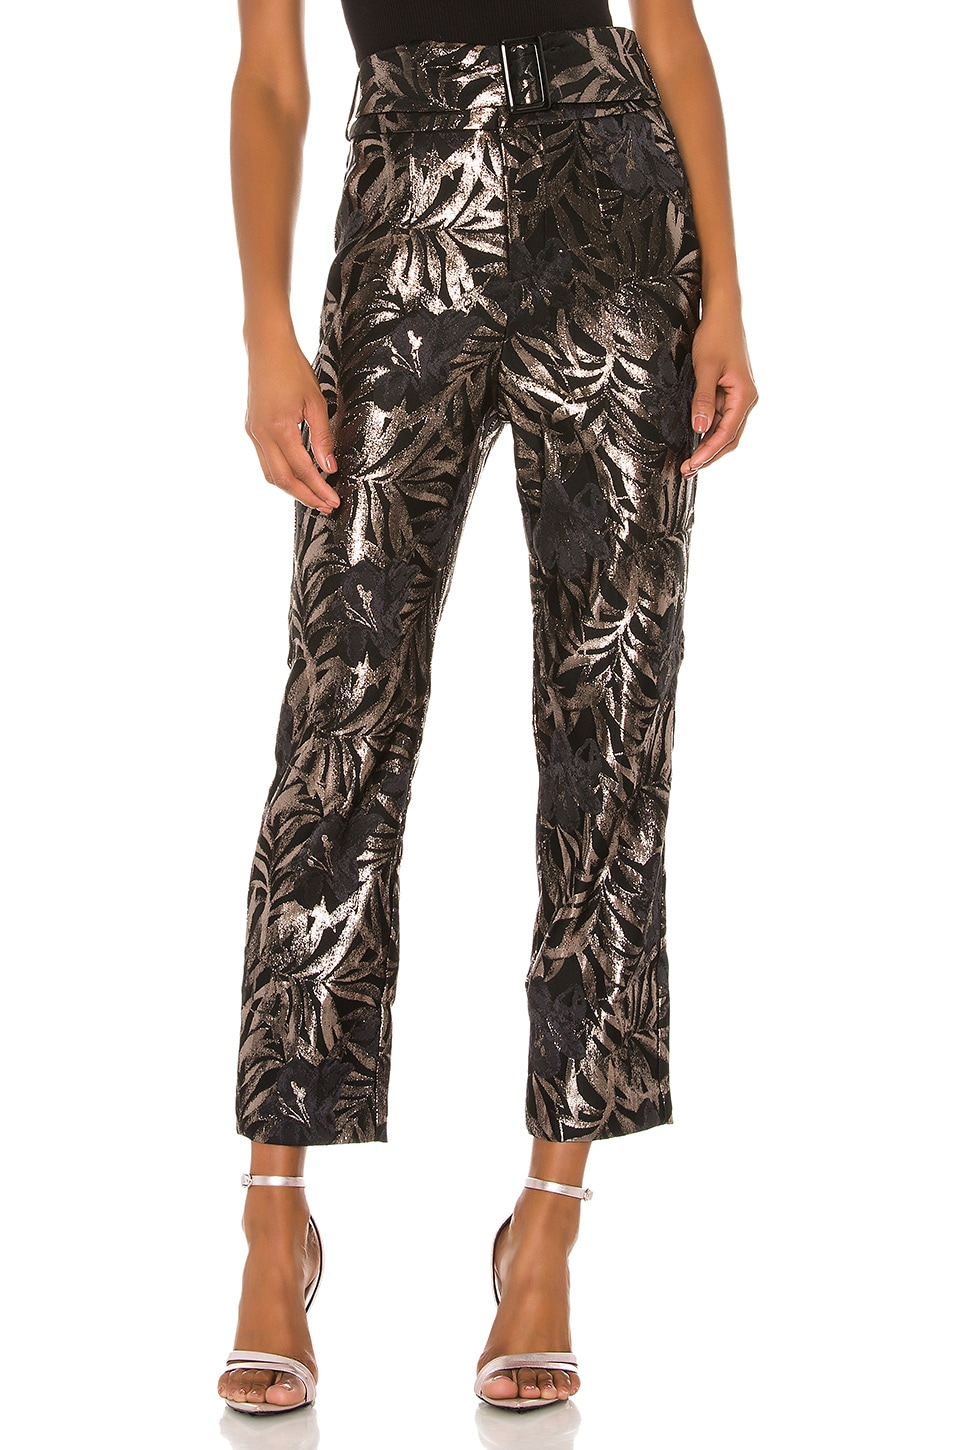 Camila Coelho Aida Trousers in Black and Silver